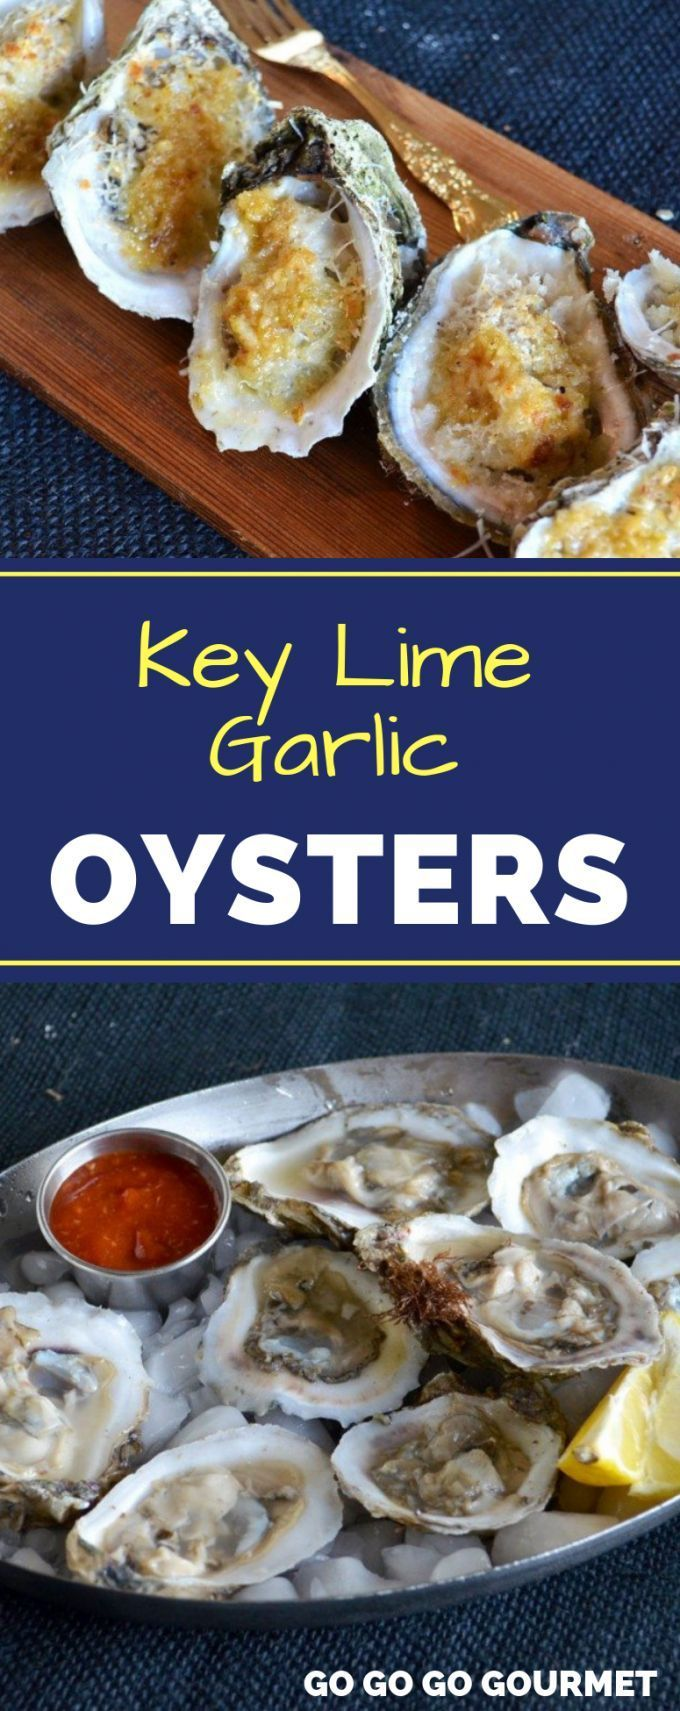 These Key Lime Garlic Oysters are one of the best oyster recipes! Baked (or even...,  ... These Key